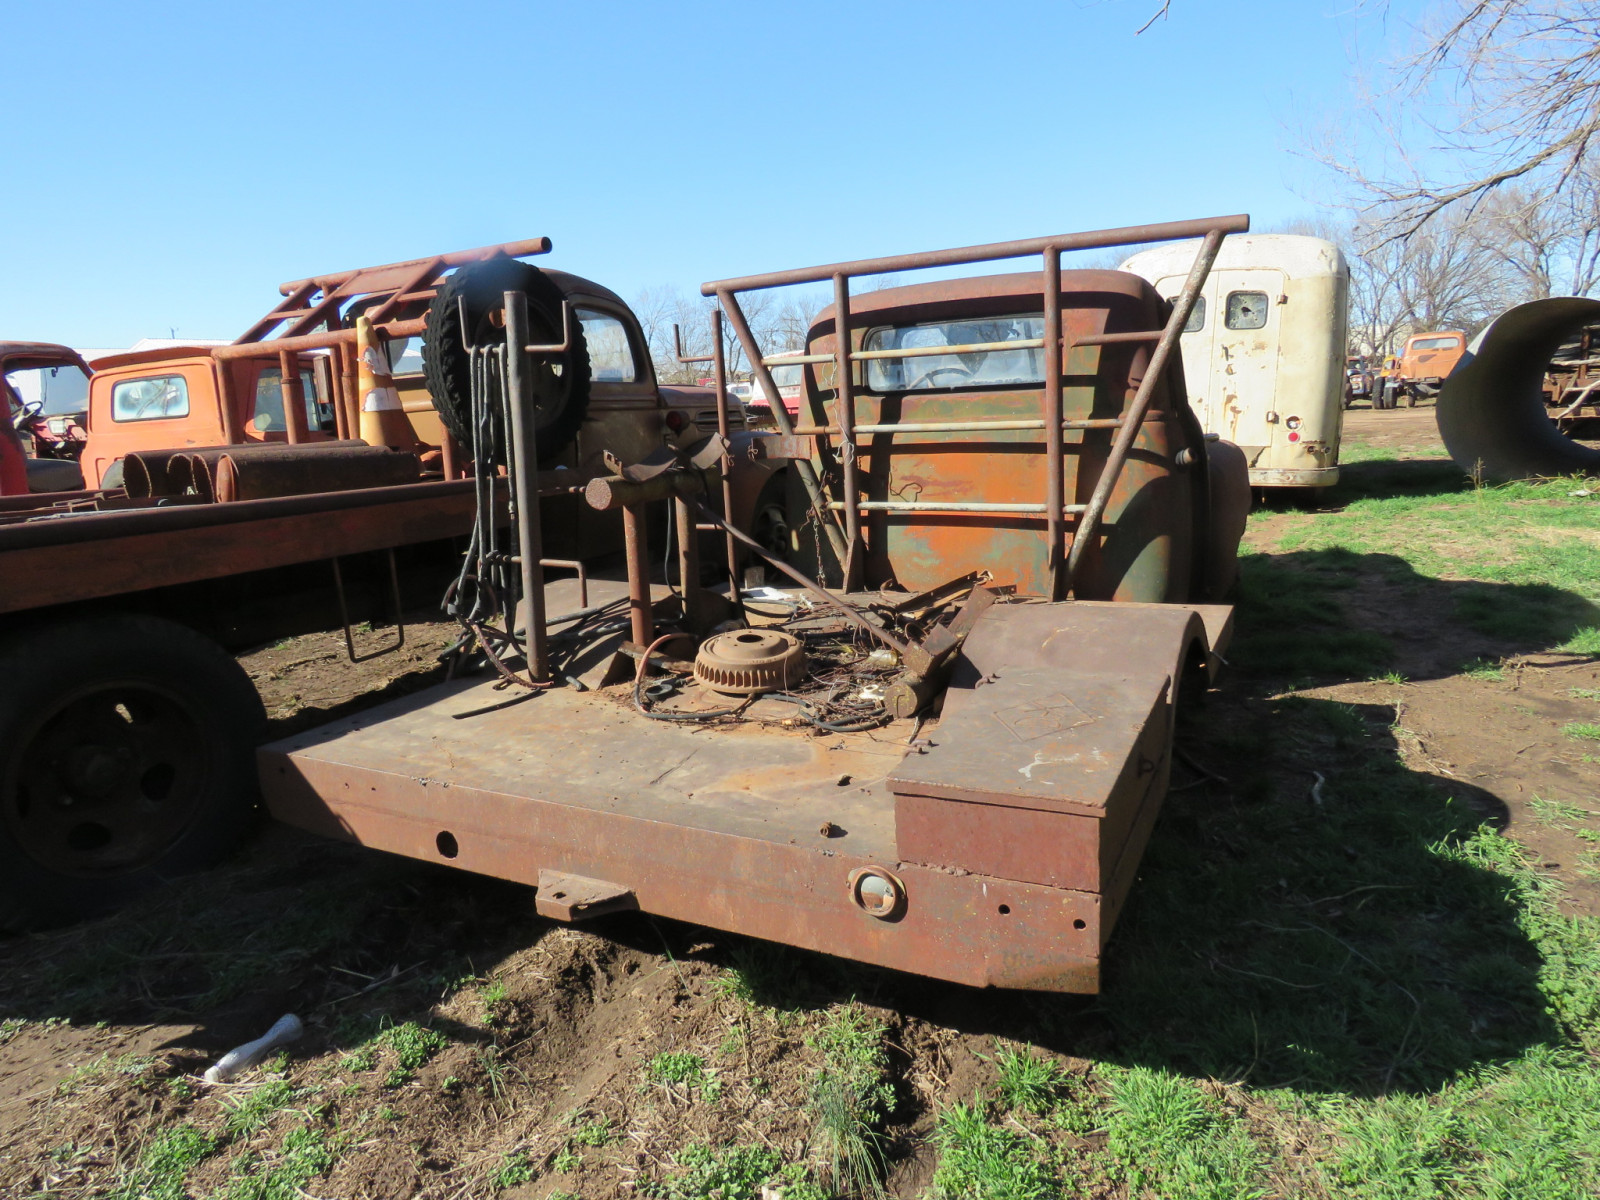 Chevrolet Truck for project or parts - Image 3